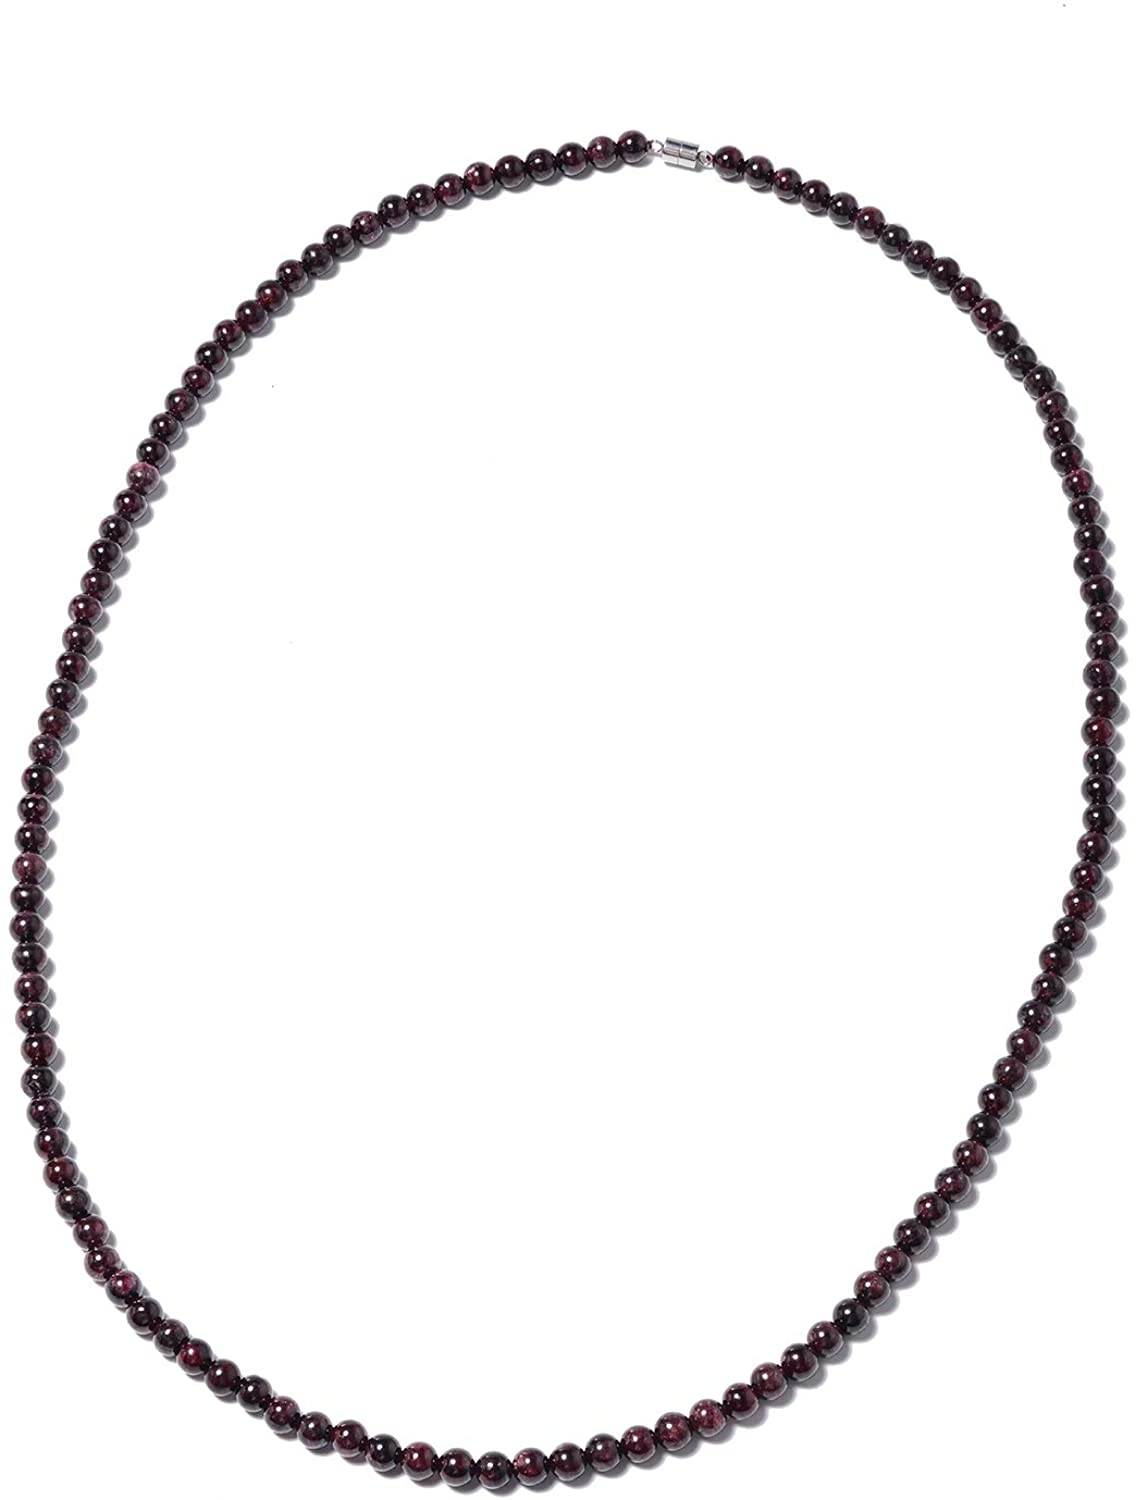 Shop LC Delivering Joy Stainless Steel Round Beads Garnet Beaded Necklace with Magnetic Clasp for Women Jewelry Gift Size 30